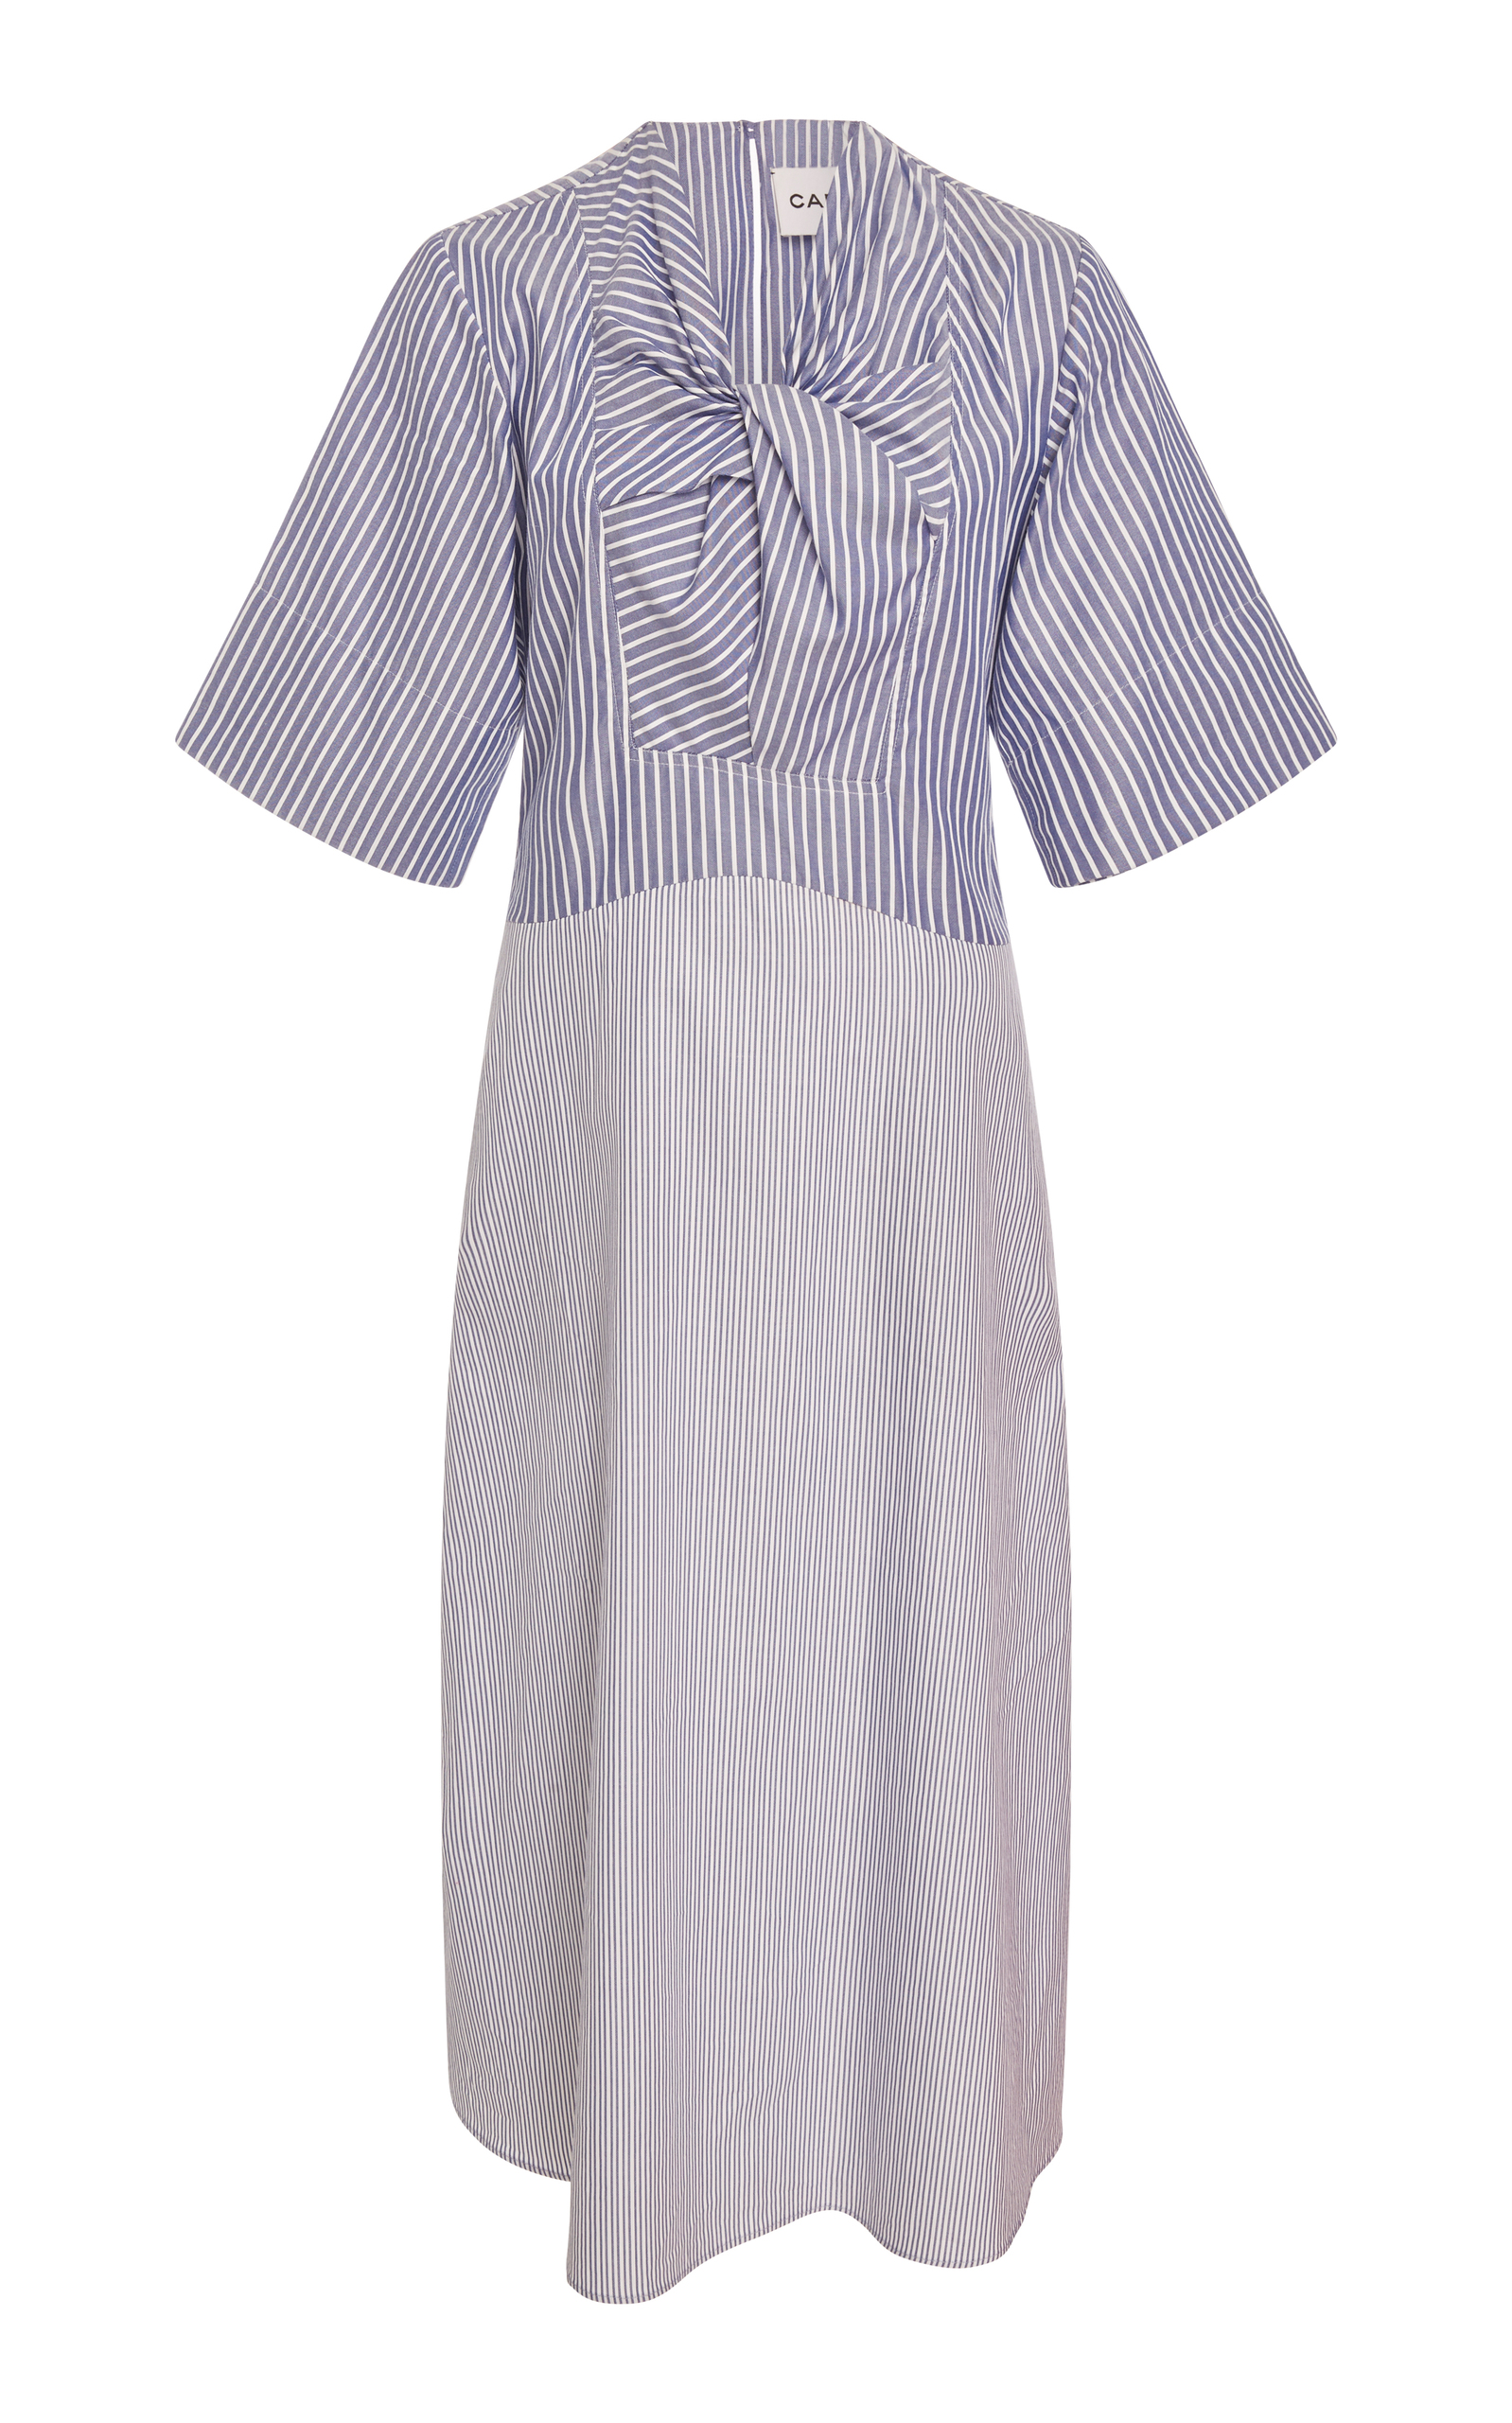 https://assets10.modaoperandi.com/images/products/608646/200337/large_carven-stripe-bow-embellished-cotton-dress.jpg?_t=1525377841